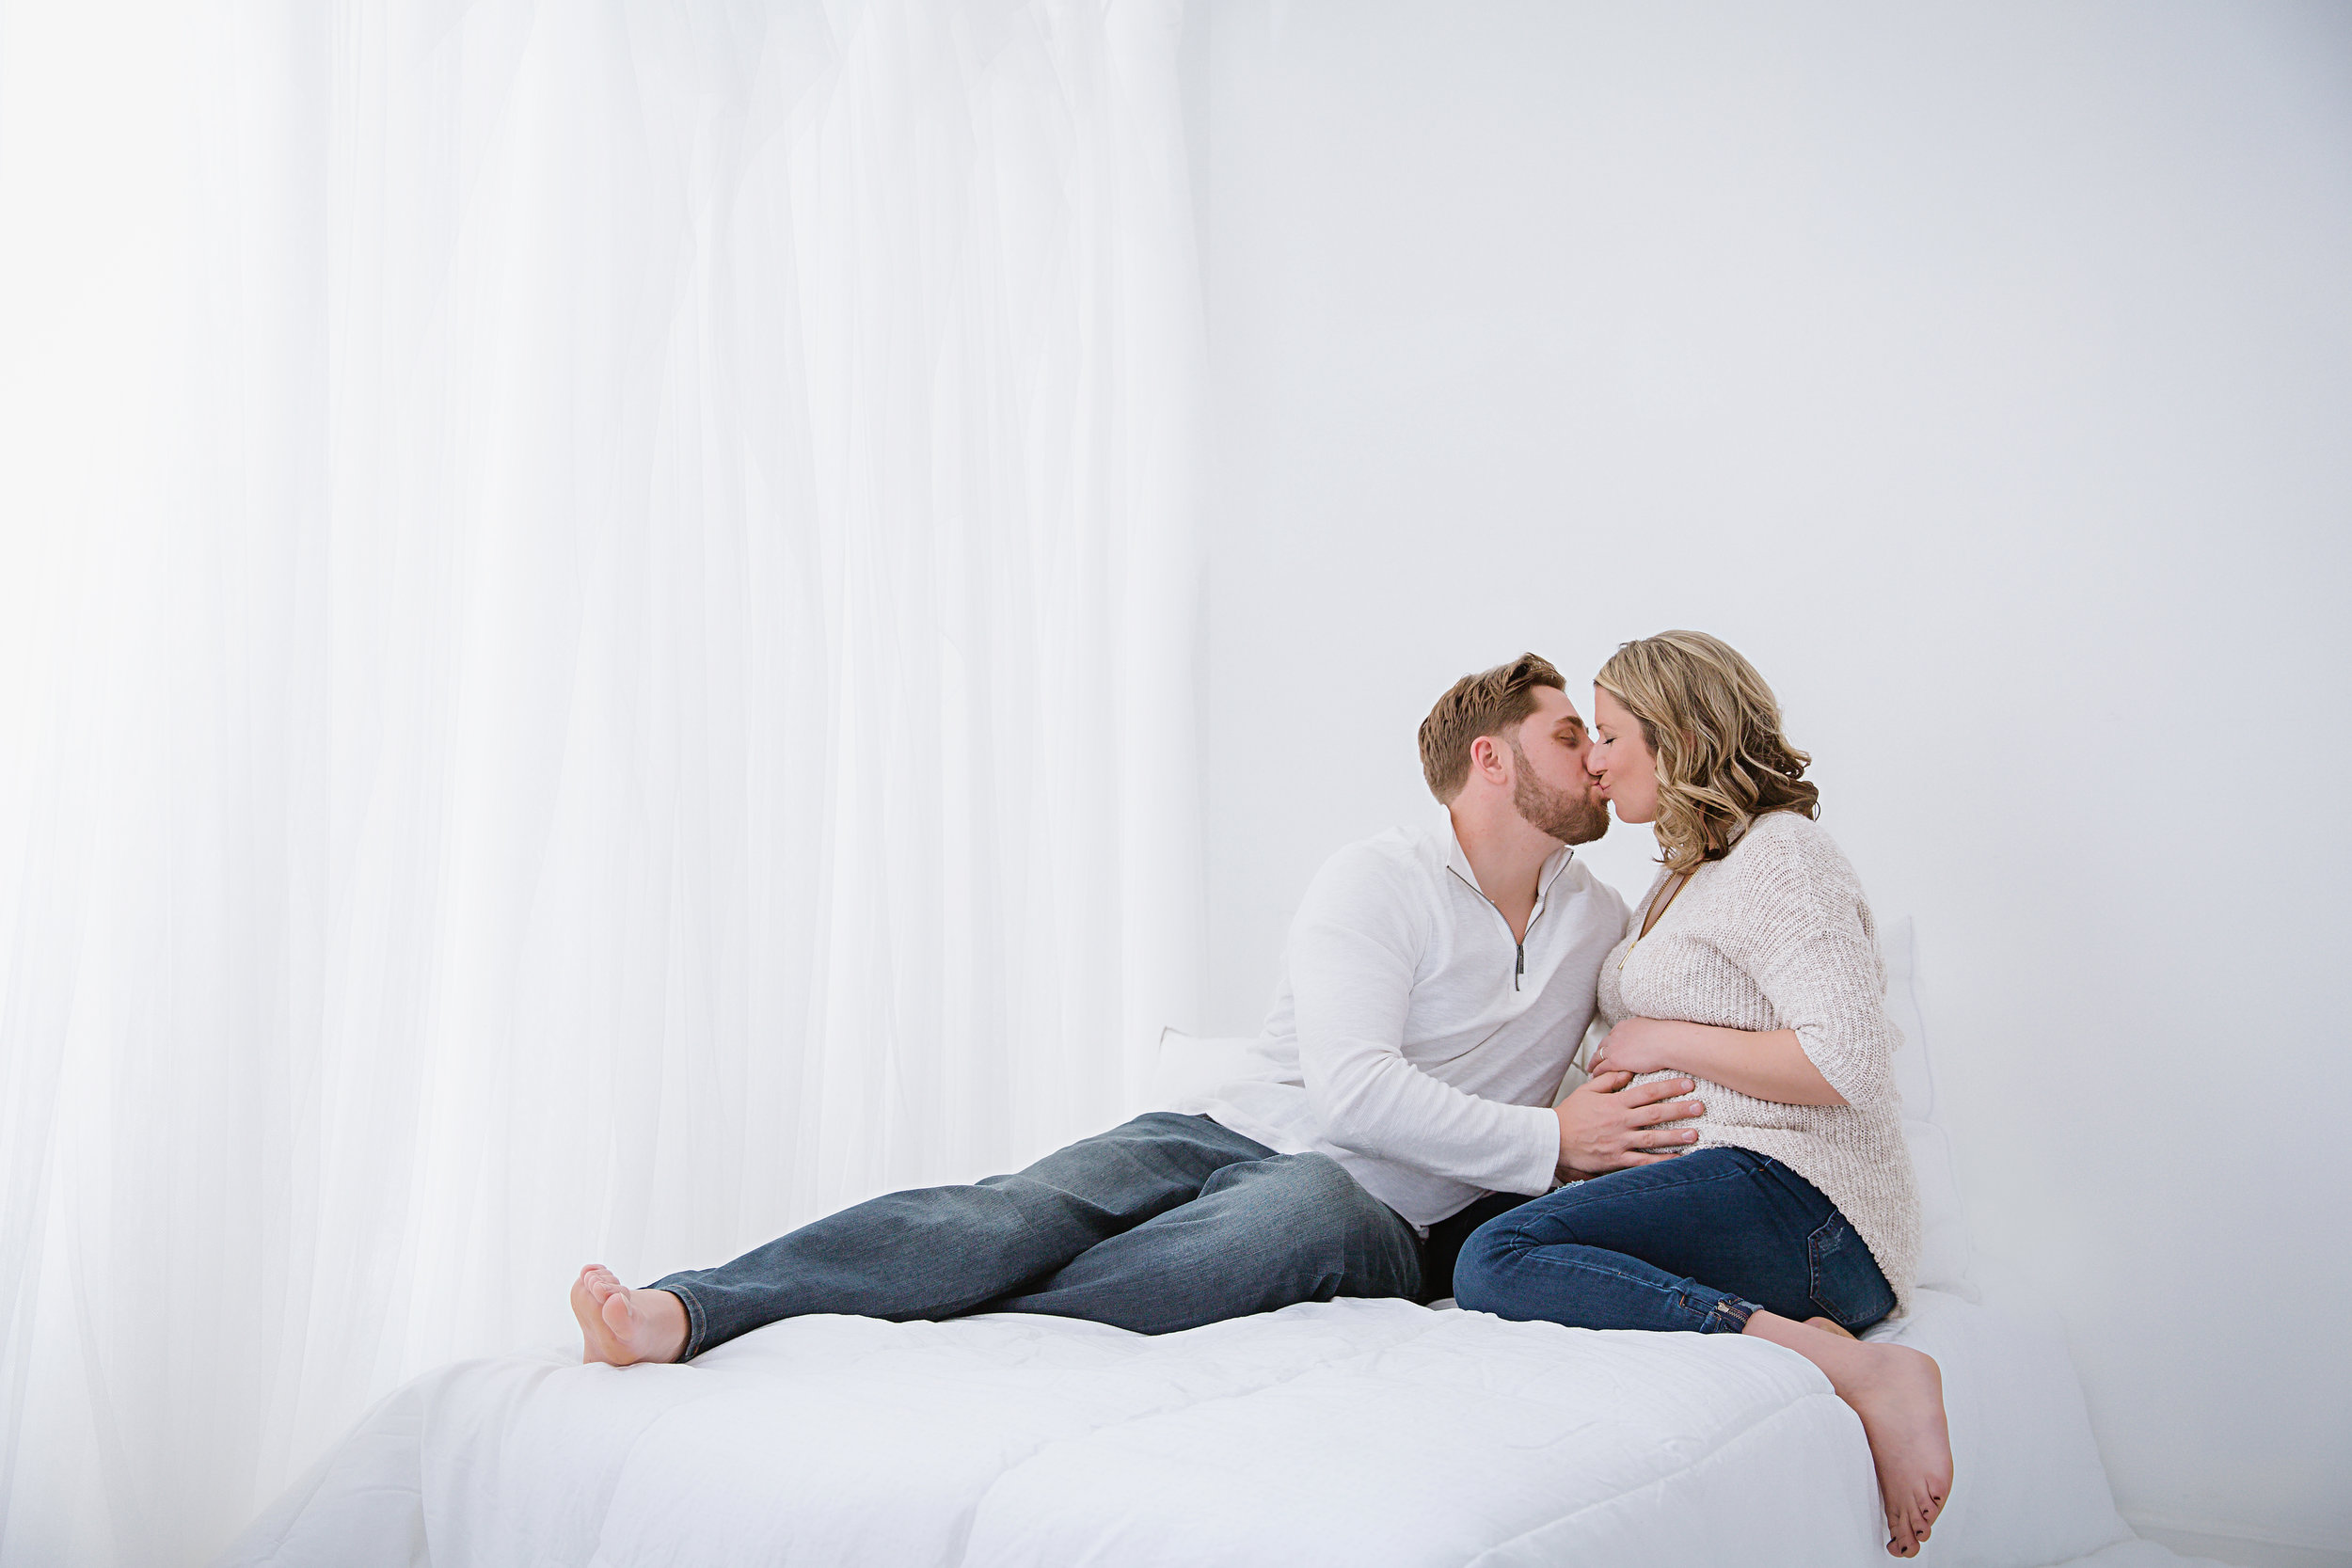 in-studio-maternity-photo-shoot-wearing-white-sweaters-in-bed